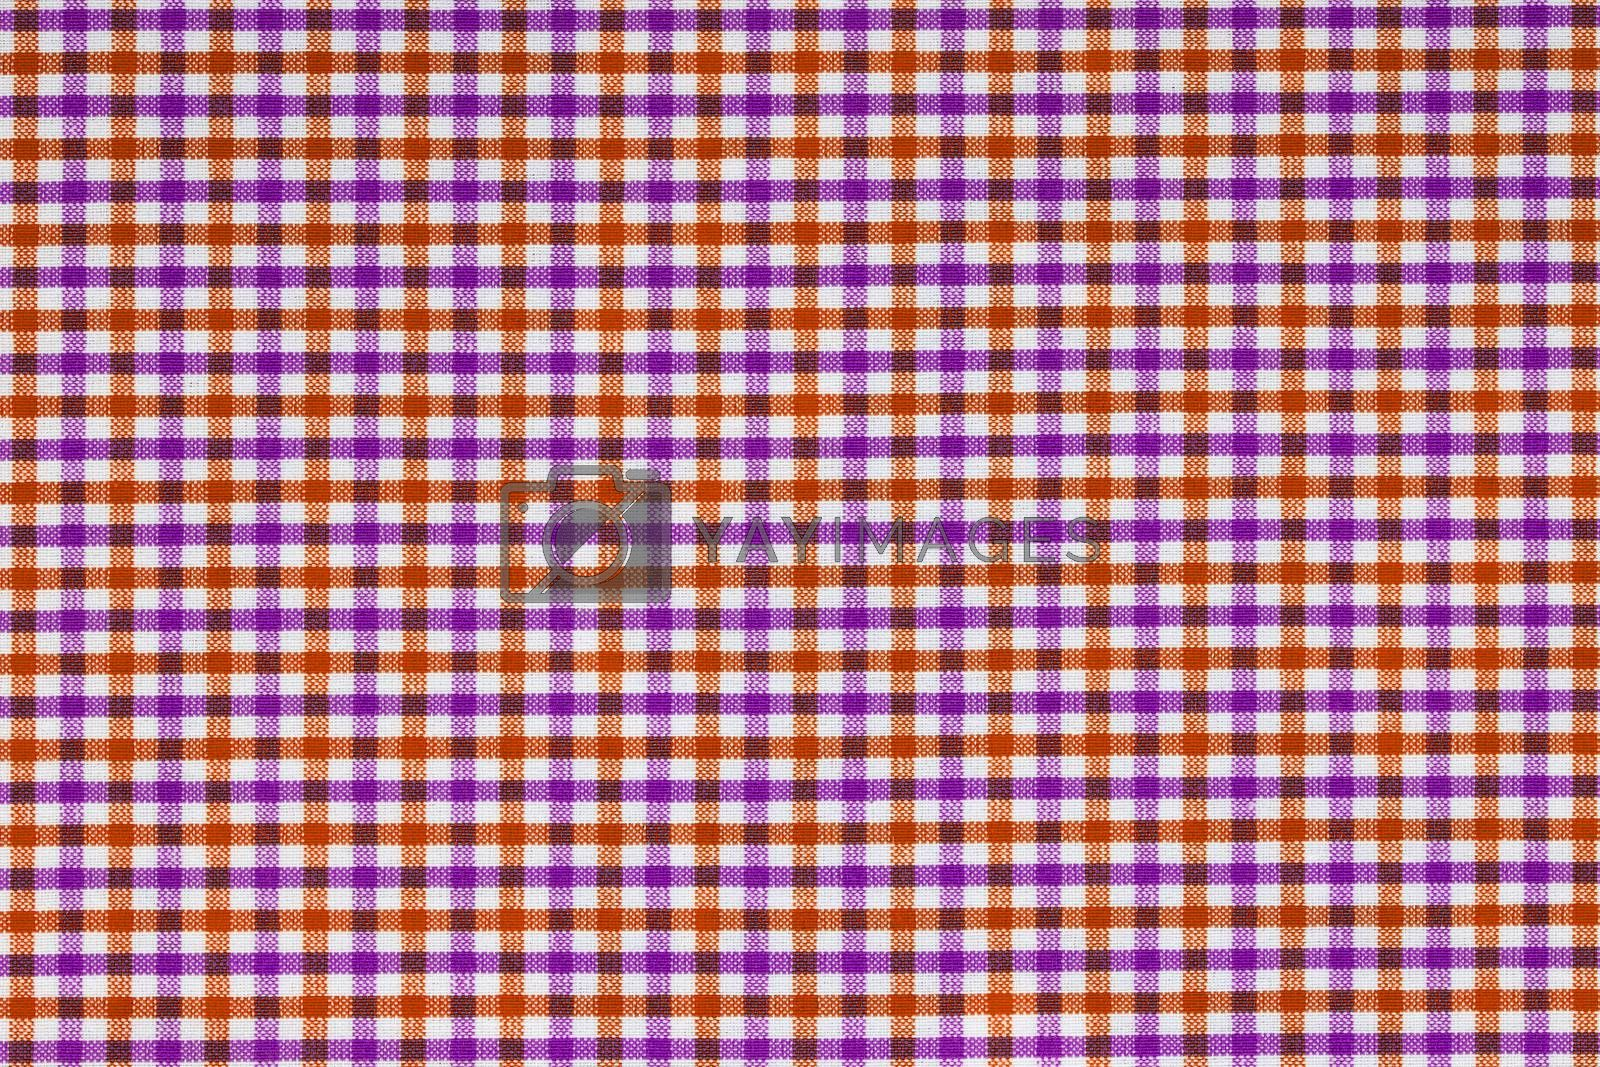 Material into grid, a background or texture